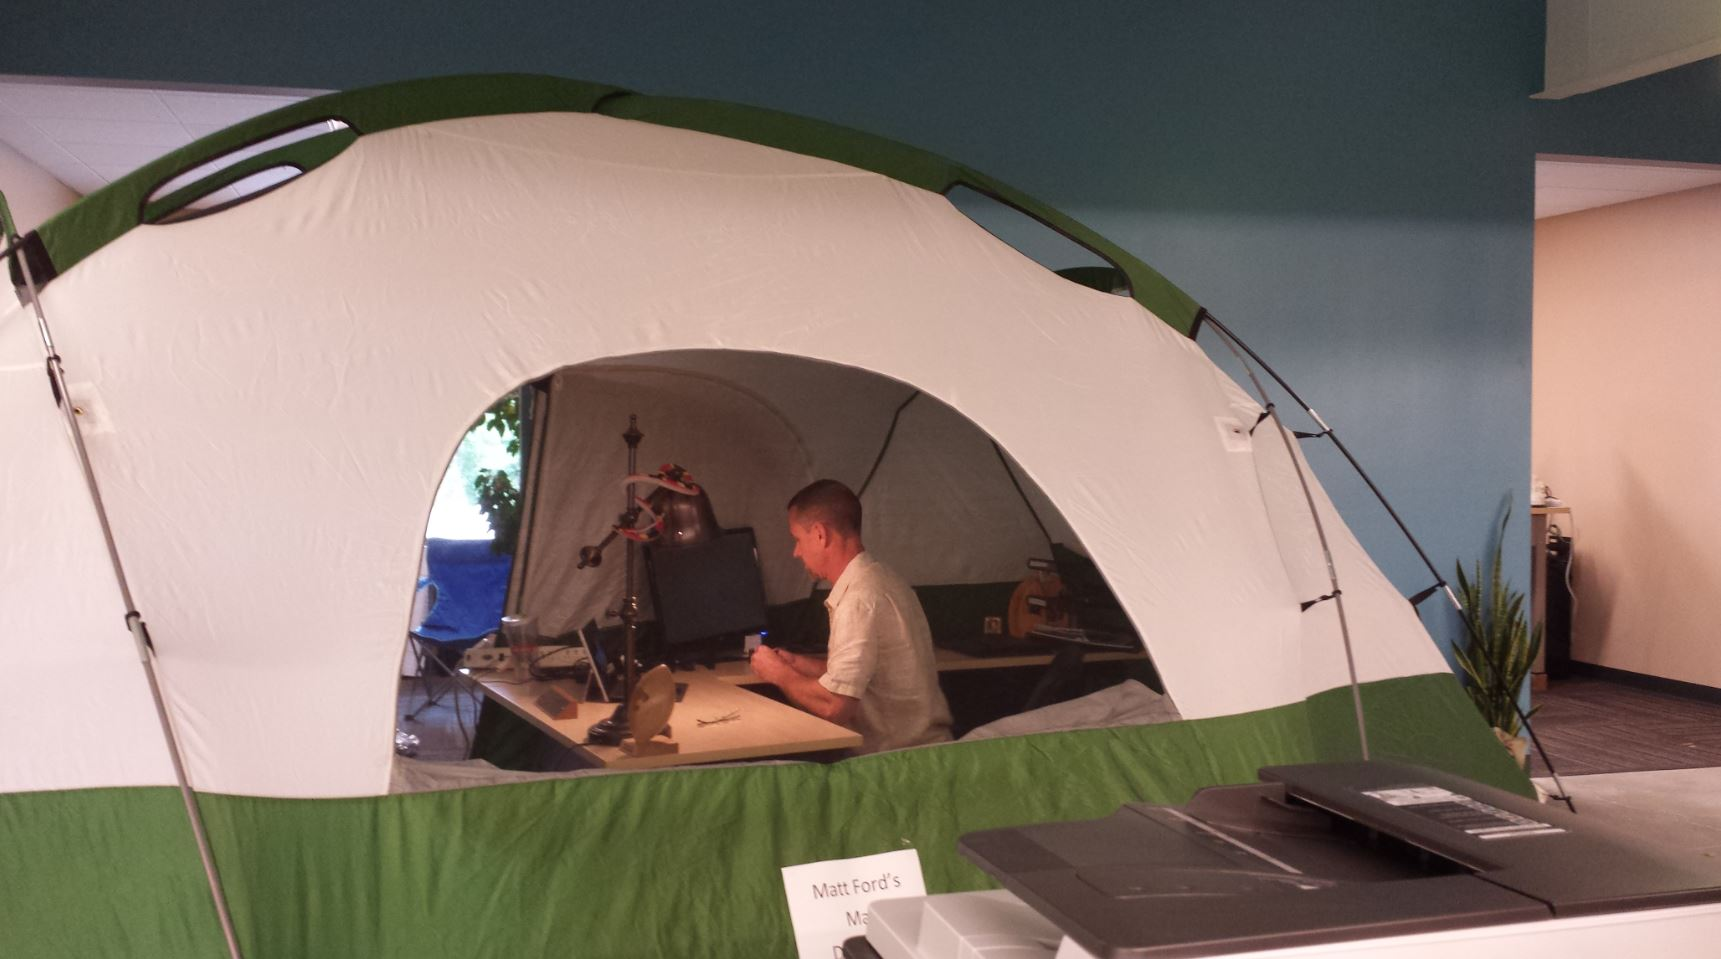 Matt's Tent Office